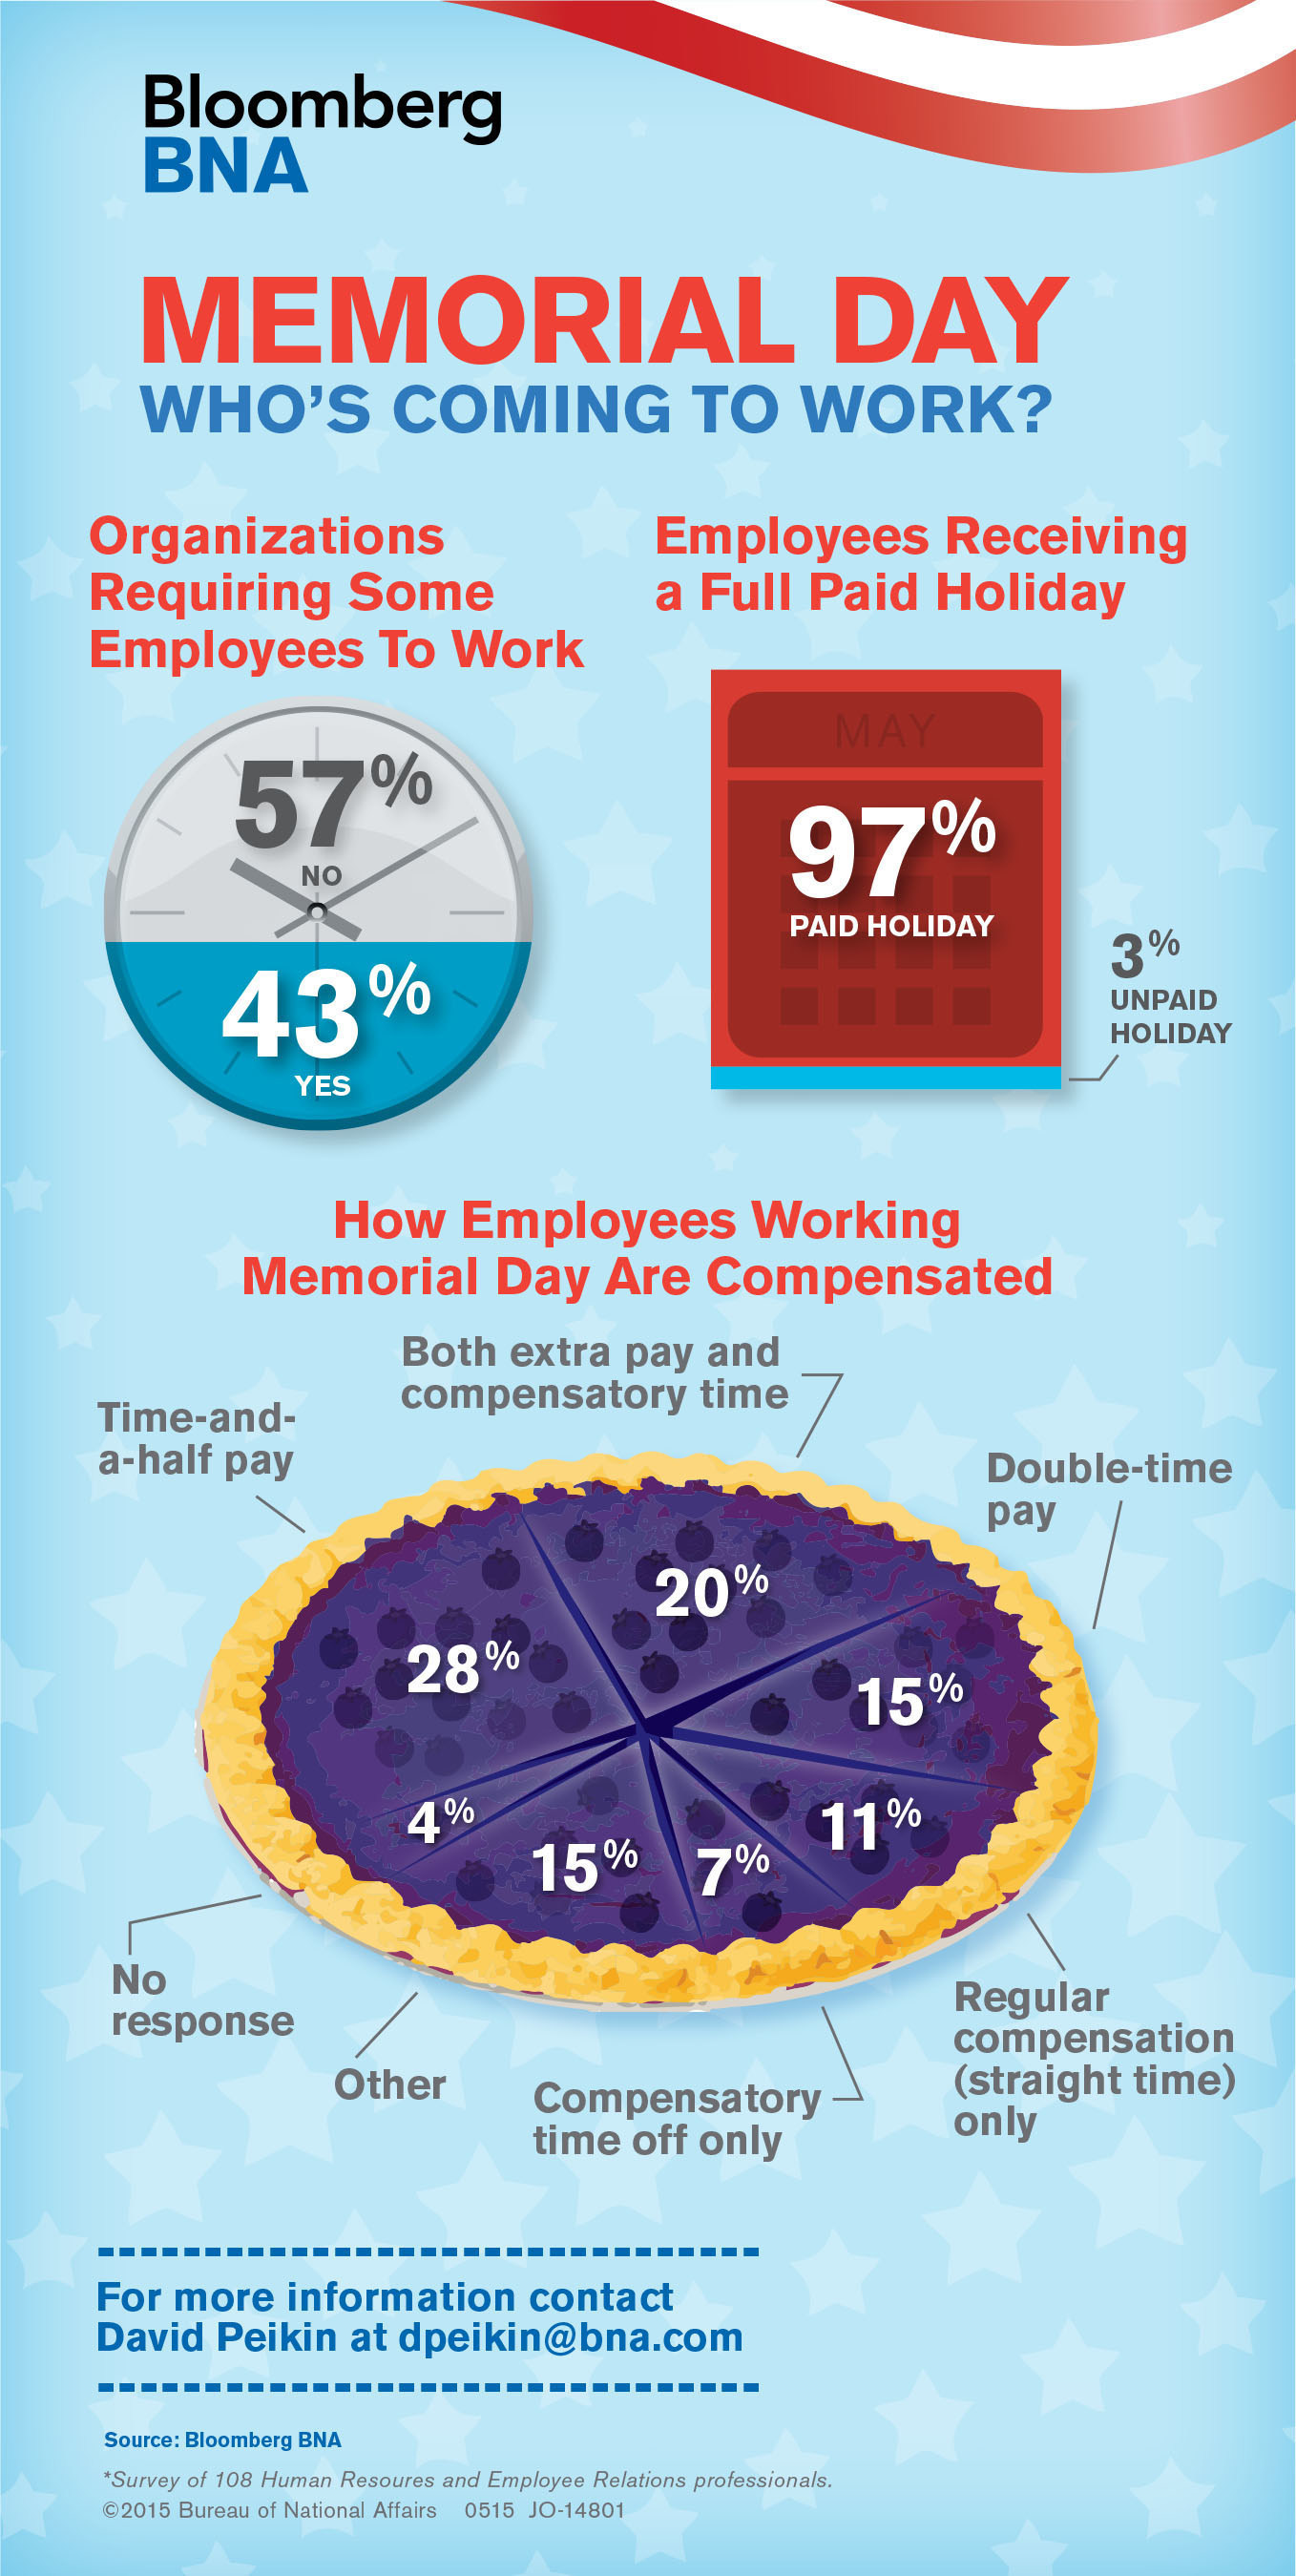 Bloomberg BNA Memorial Day Survey Infographic